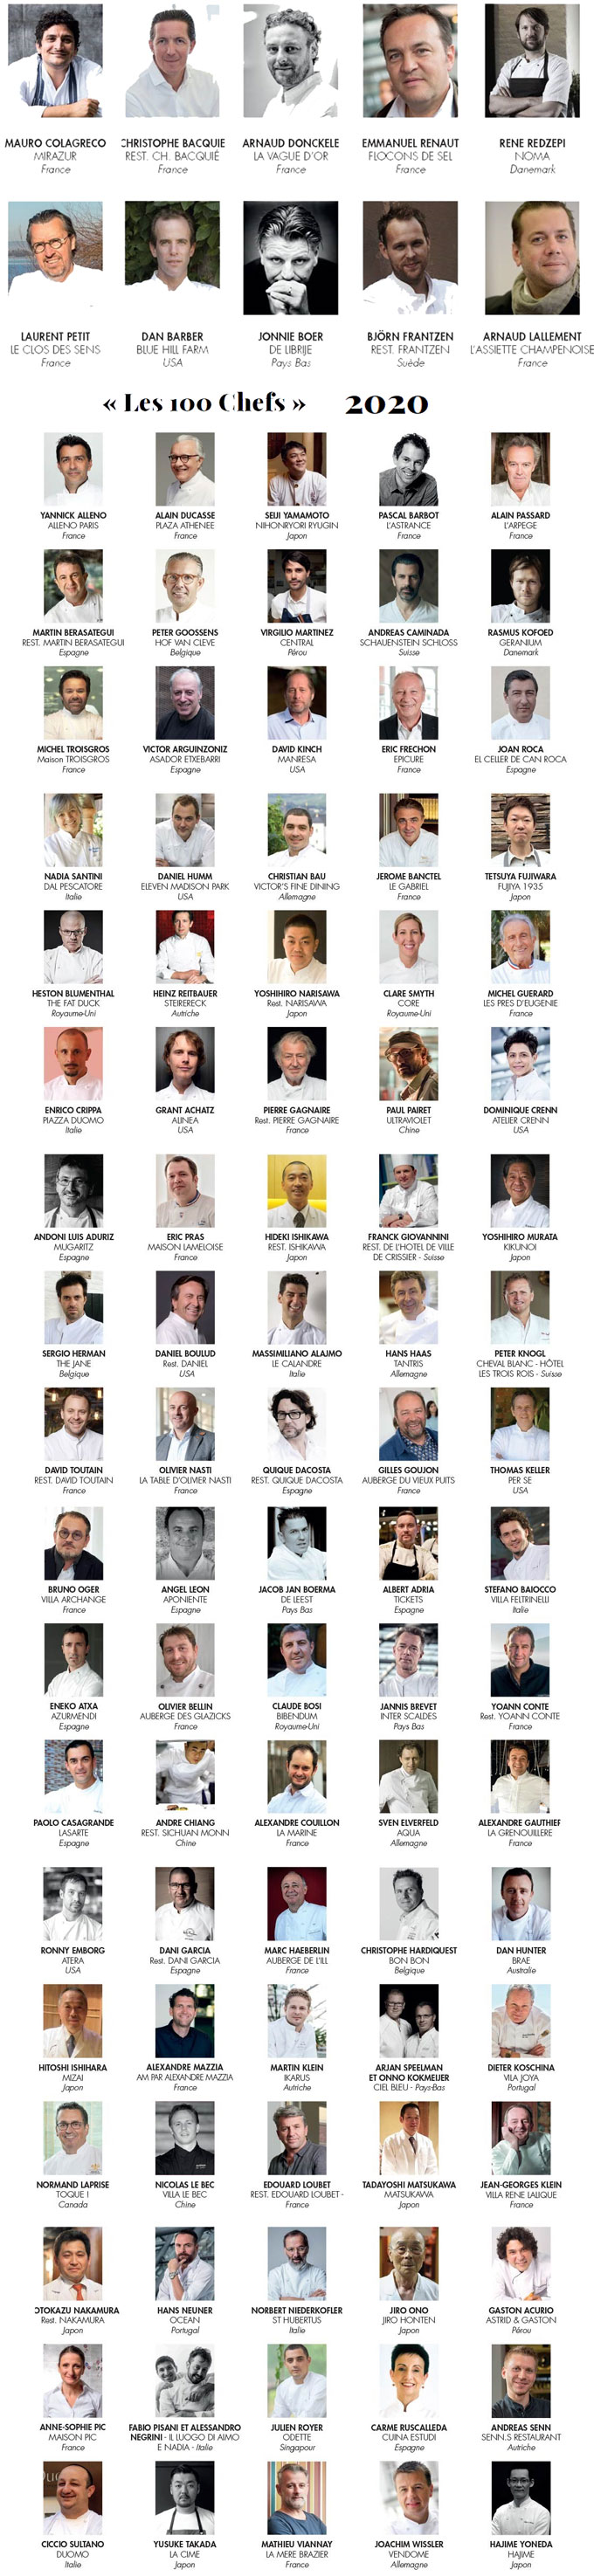 List of World's Best Cooks 2020